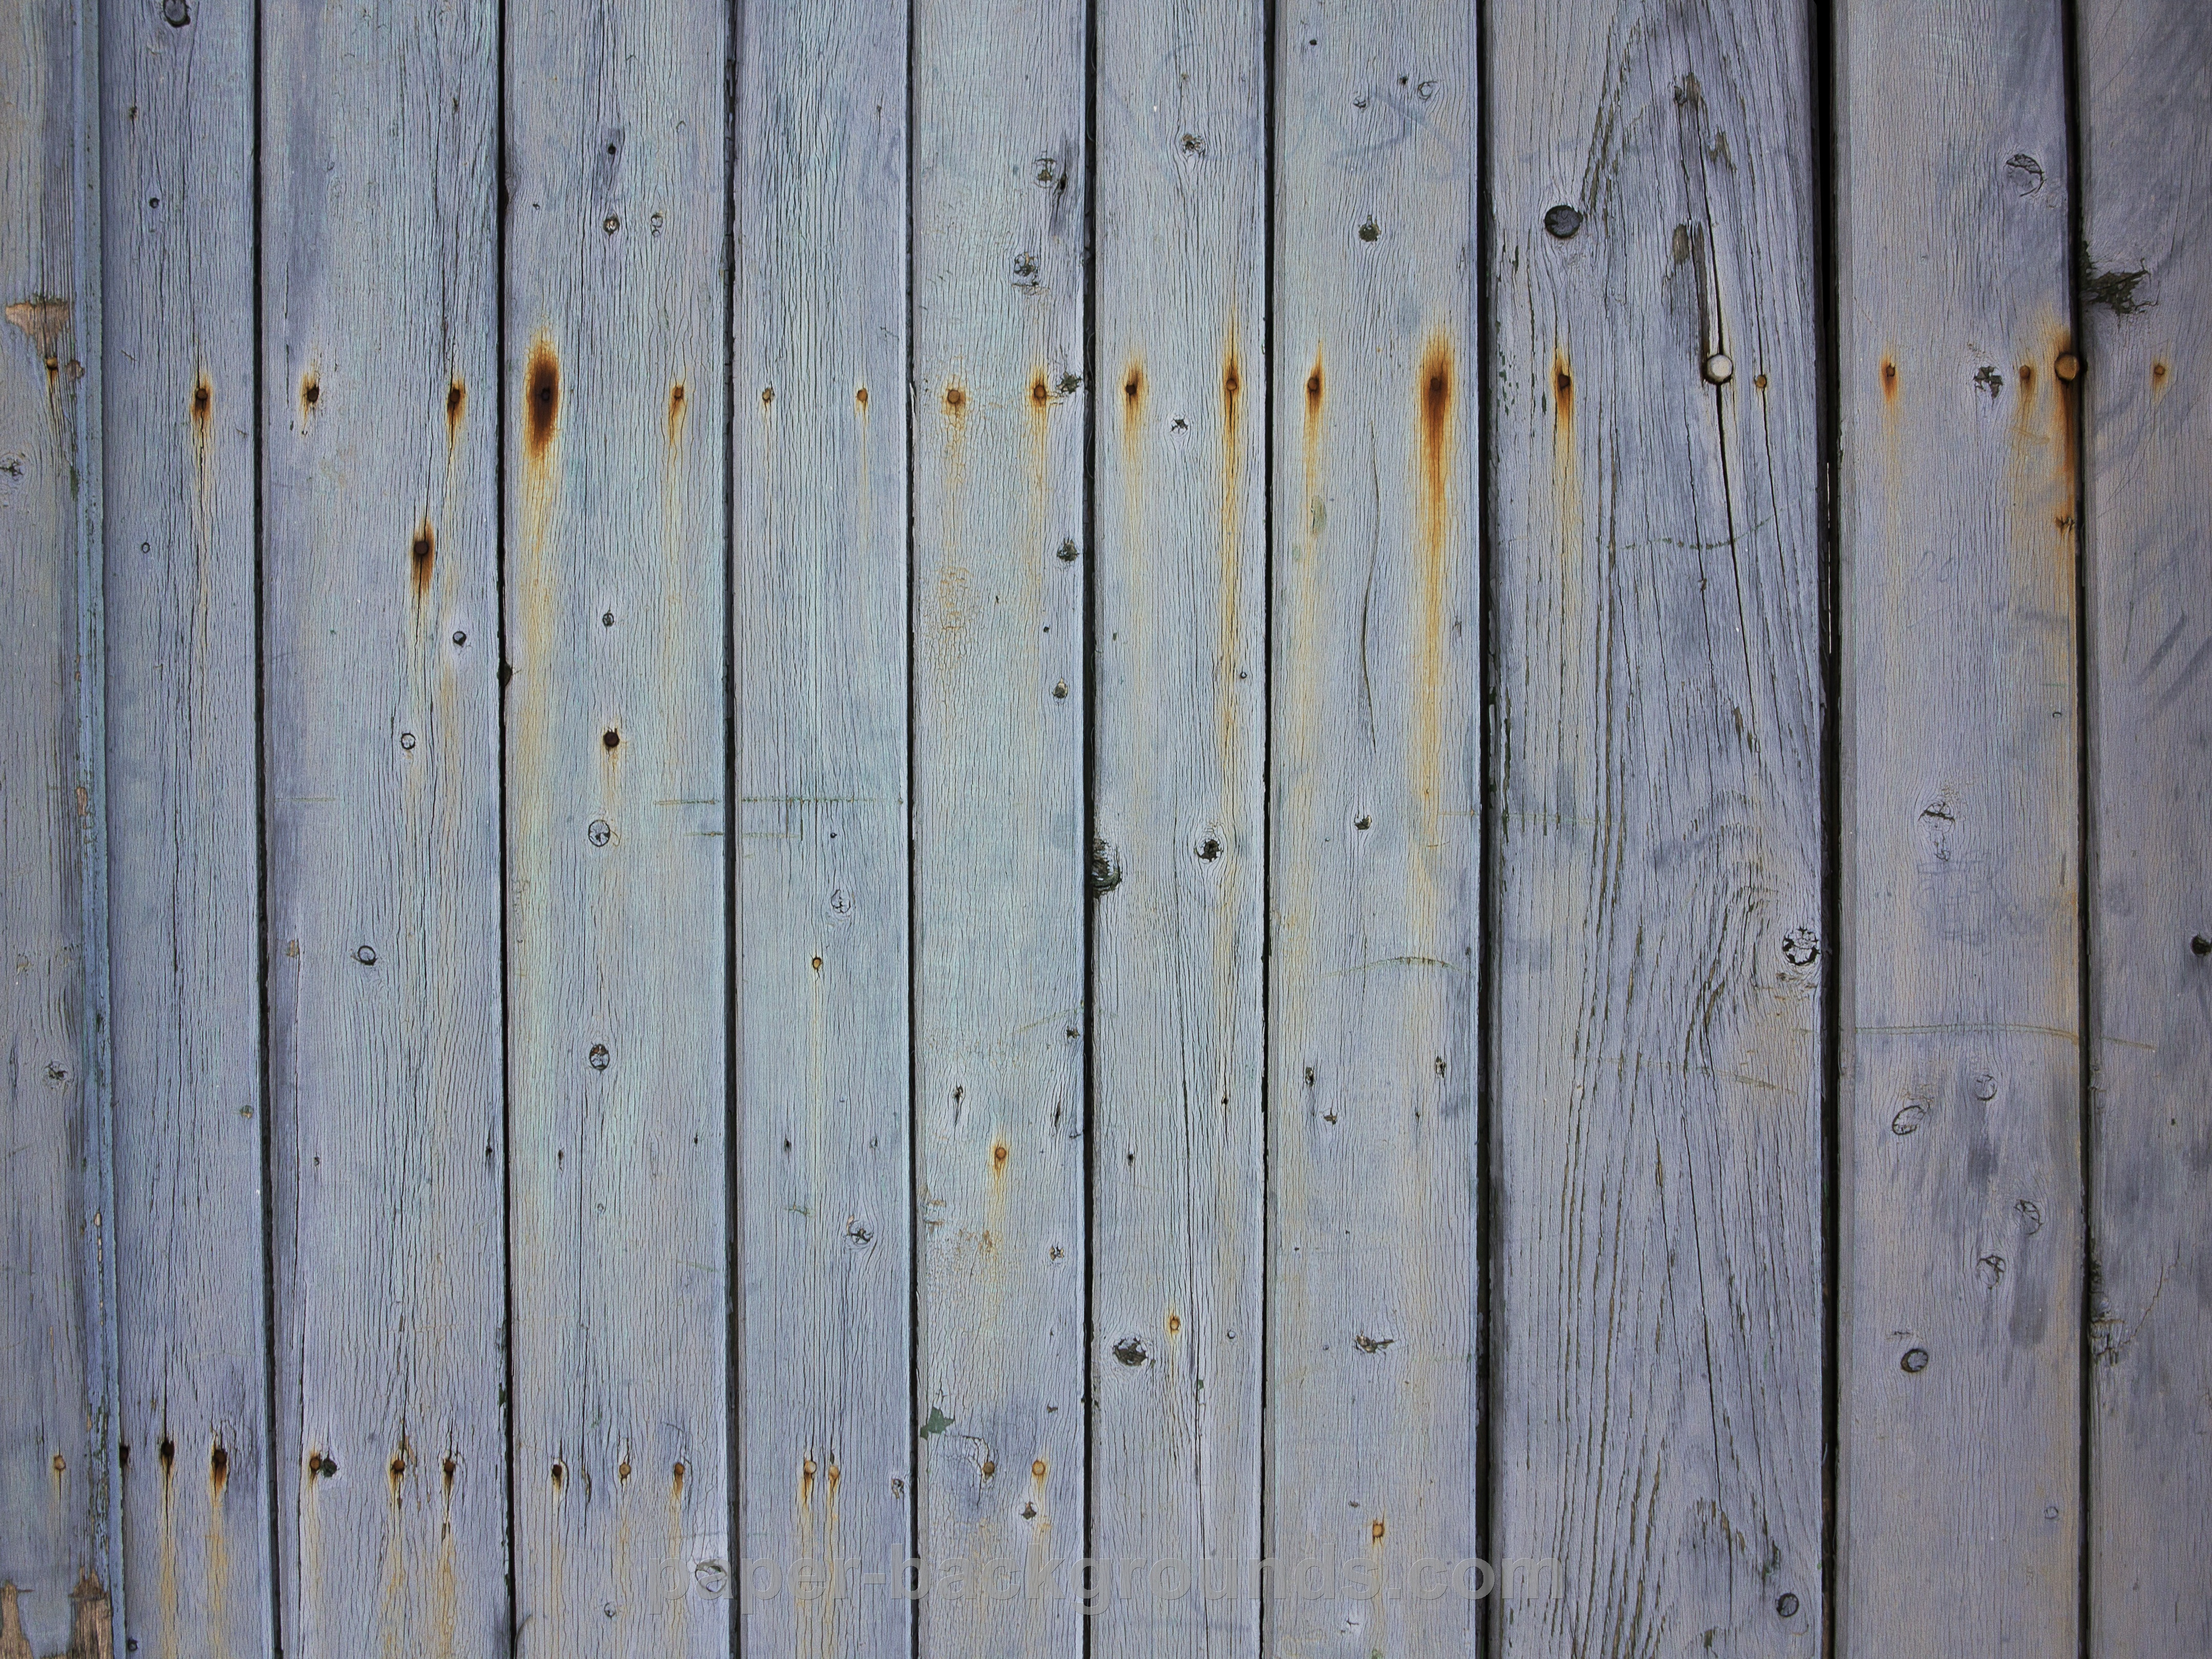 Old White Wooden Fence Texture